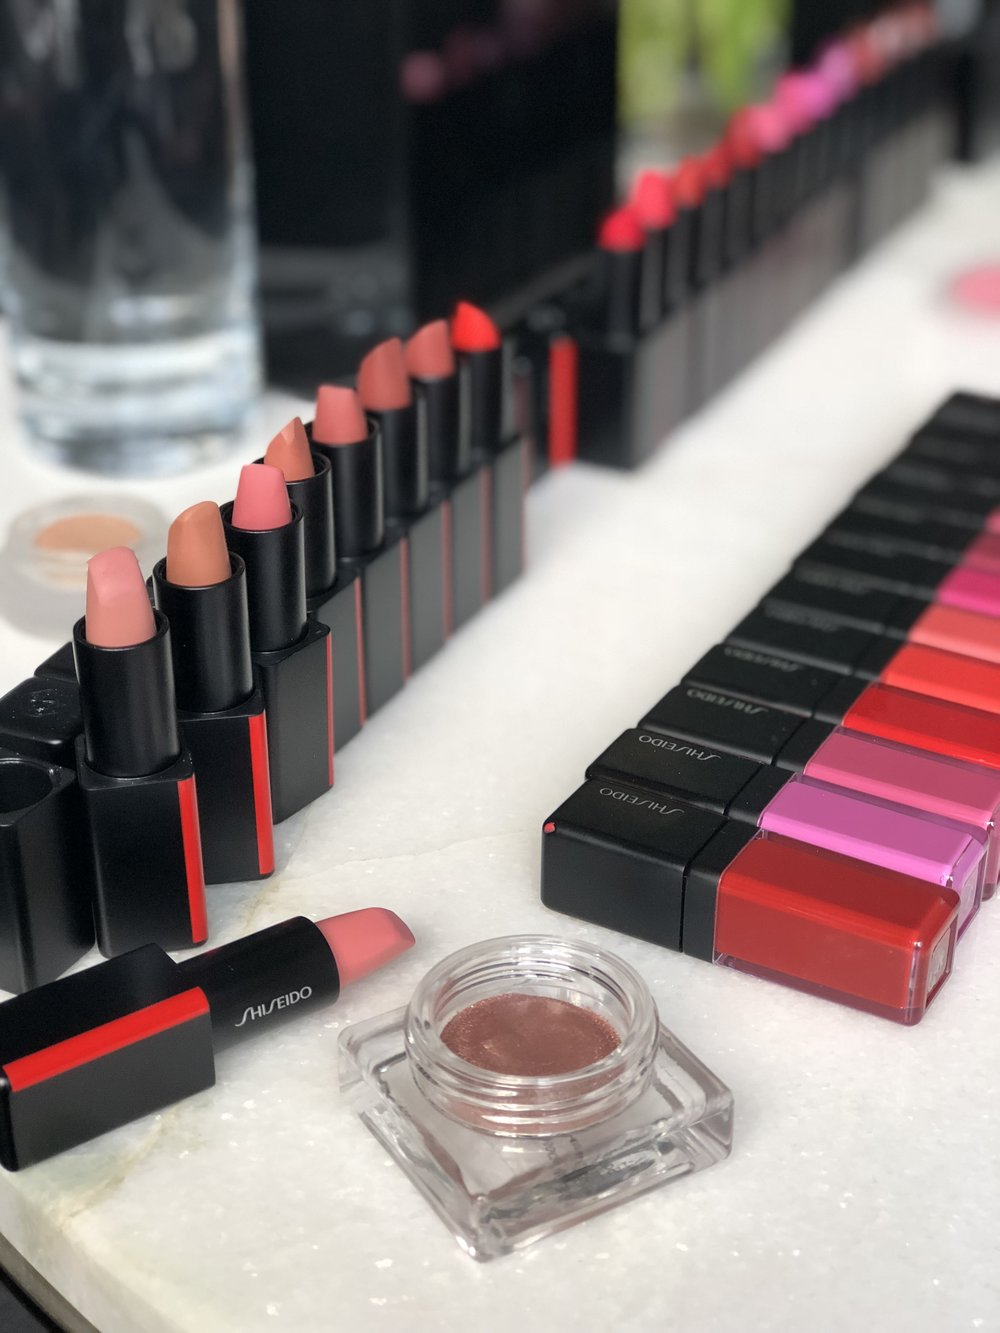 Shiseido's new & improved makeup collection